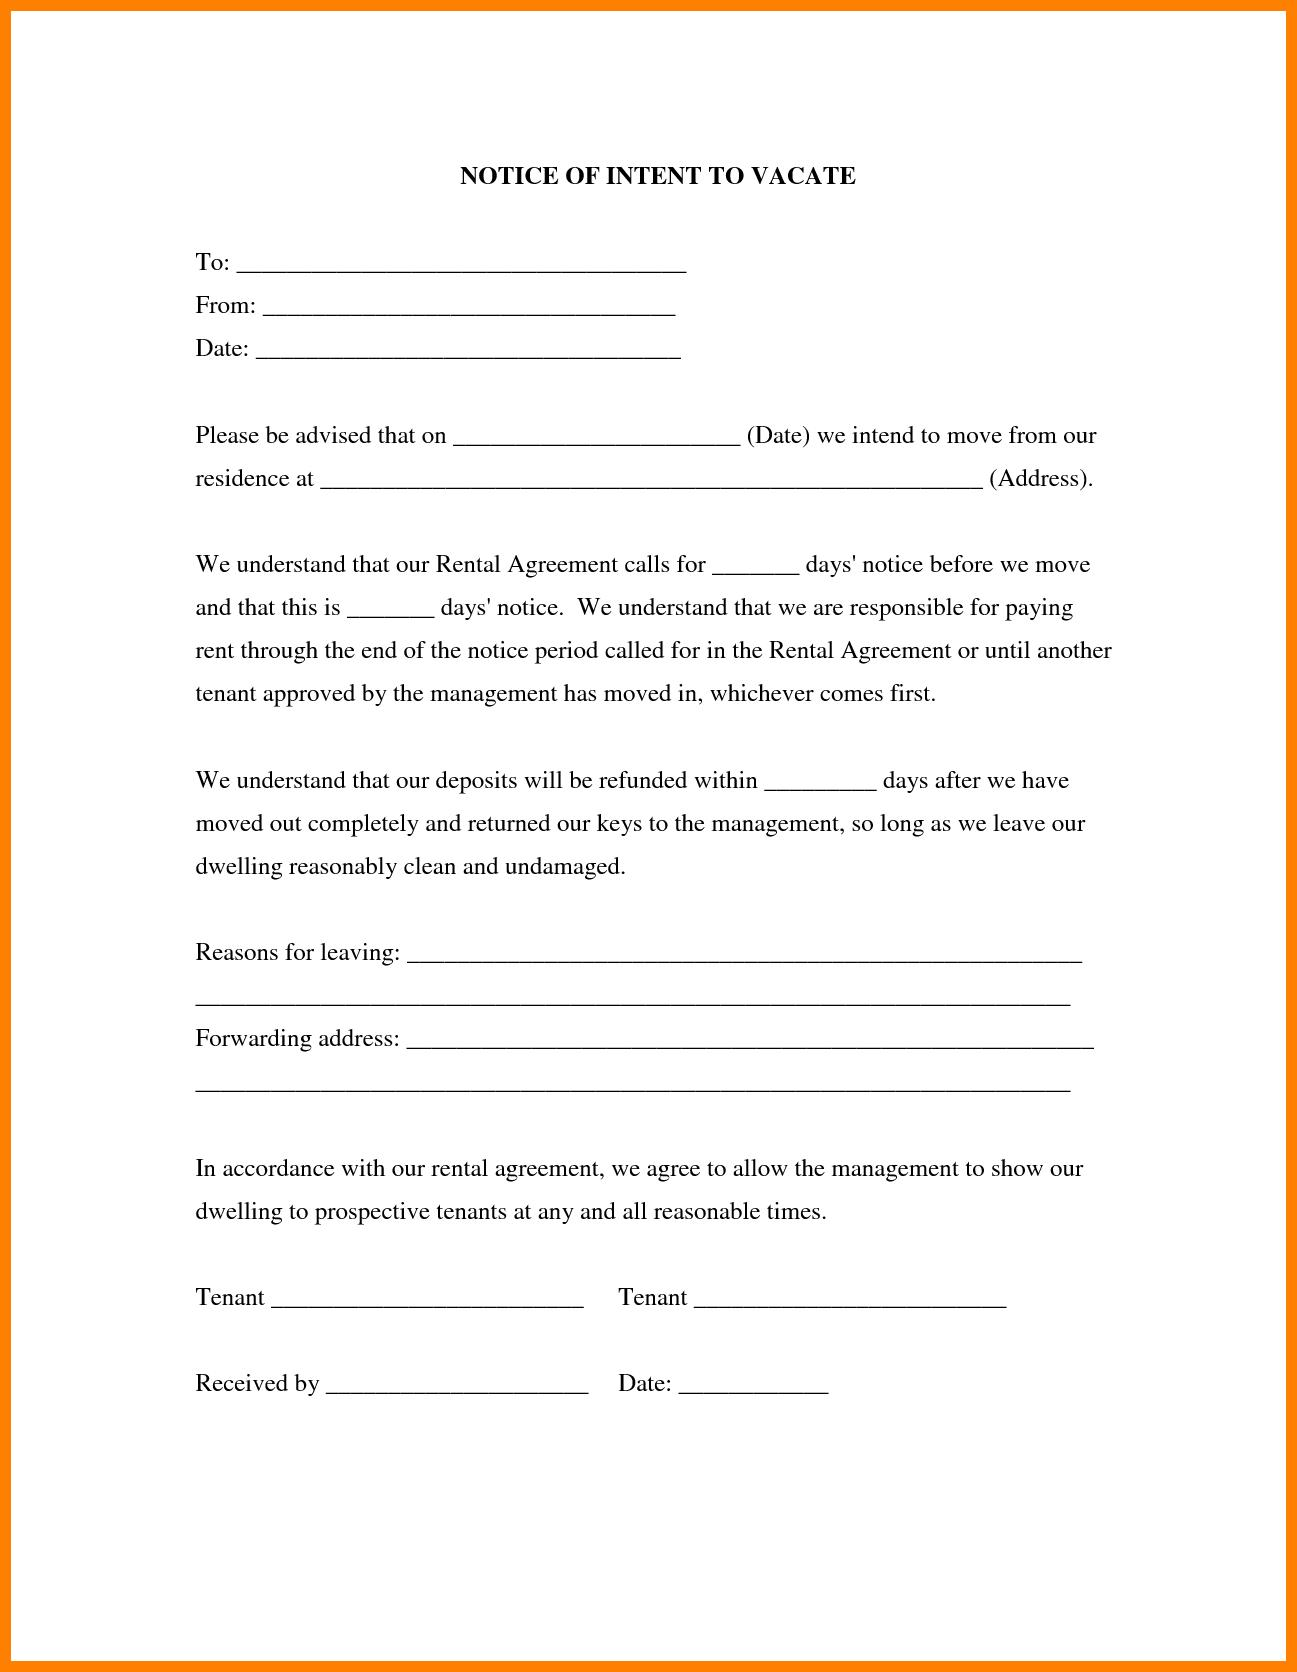 Free Printable 30 Day Eviction Notice Form